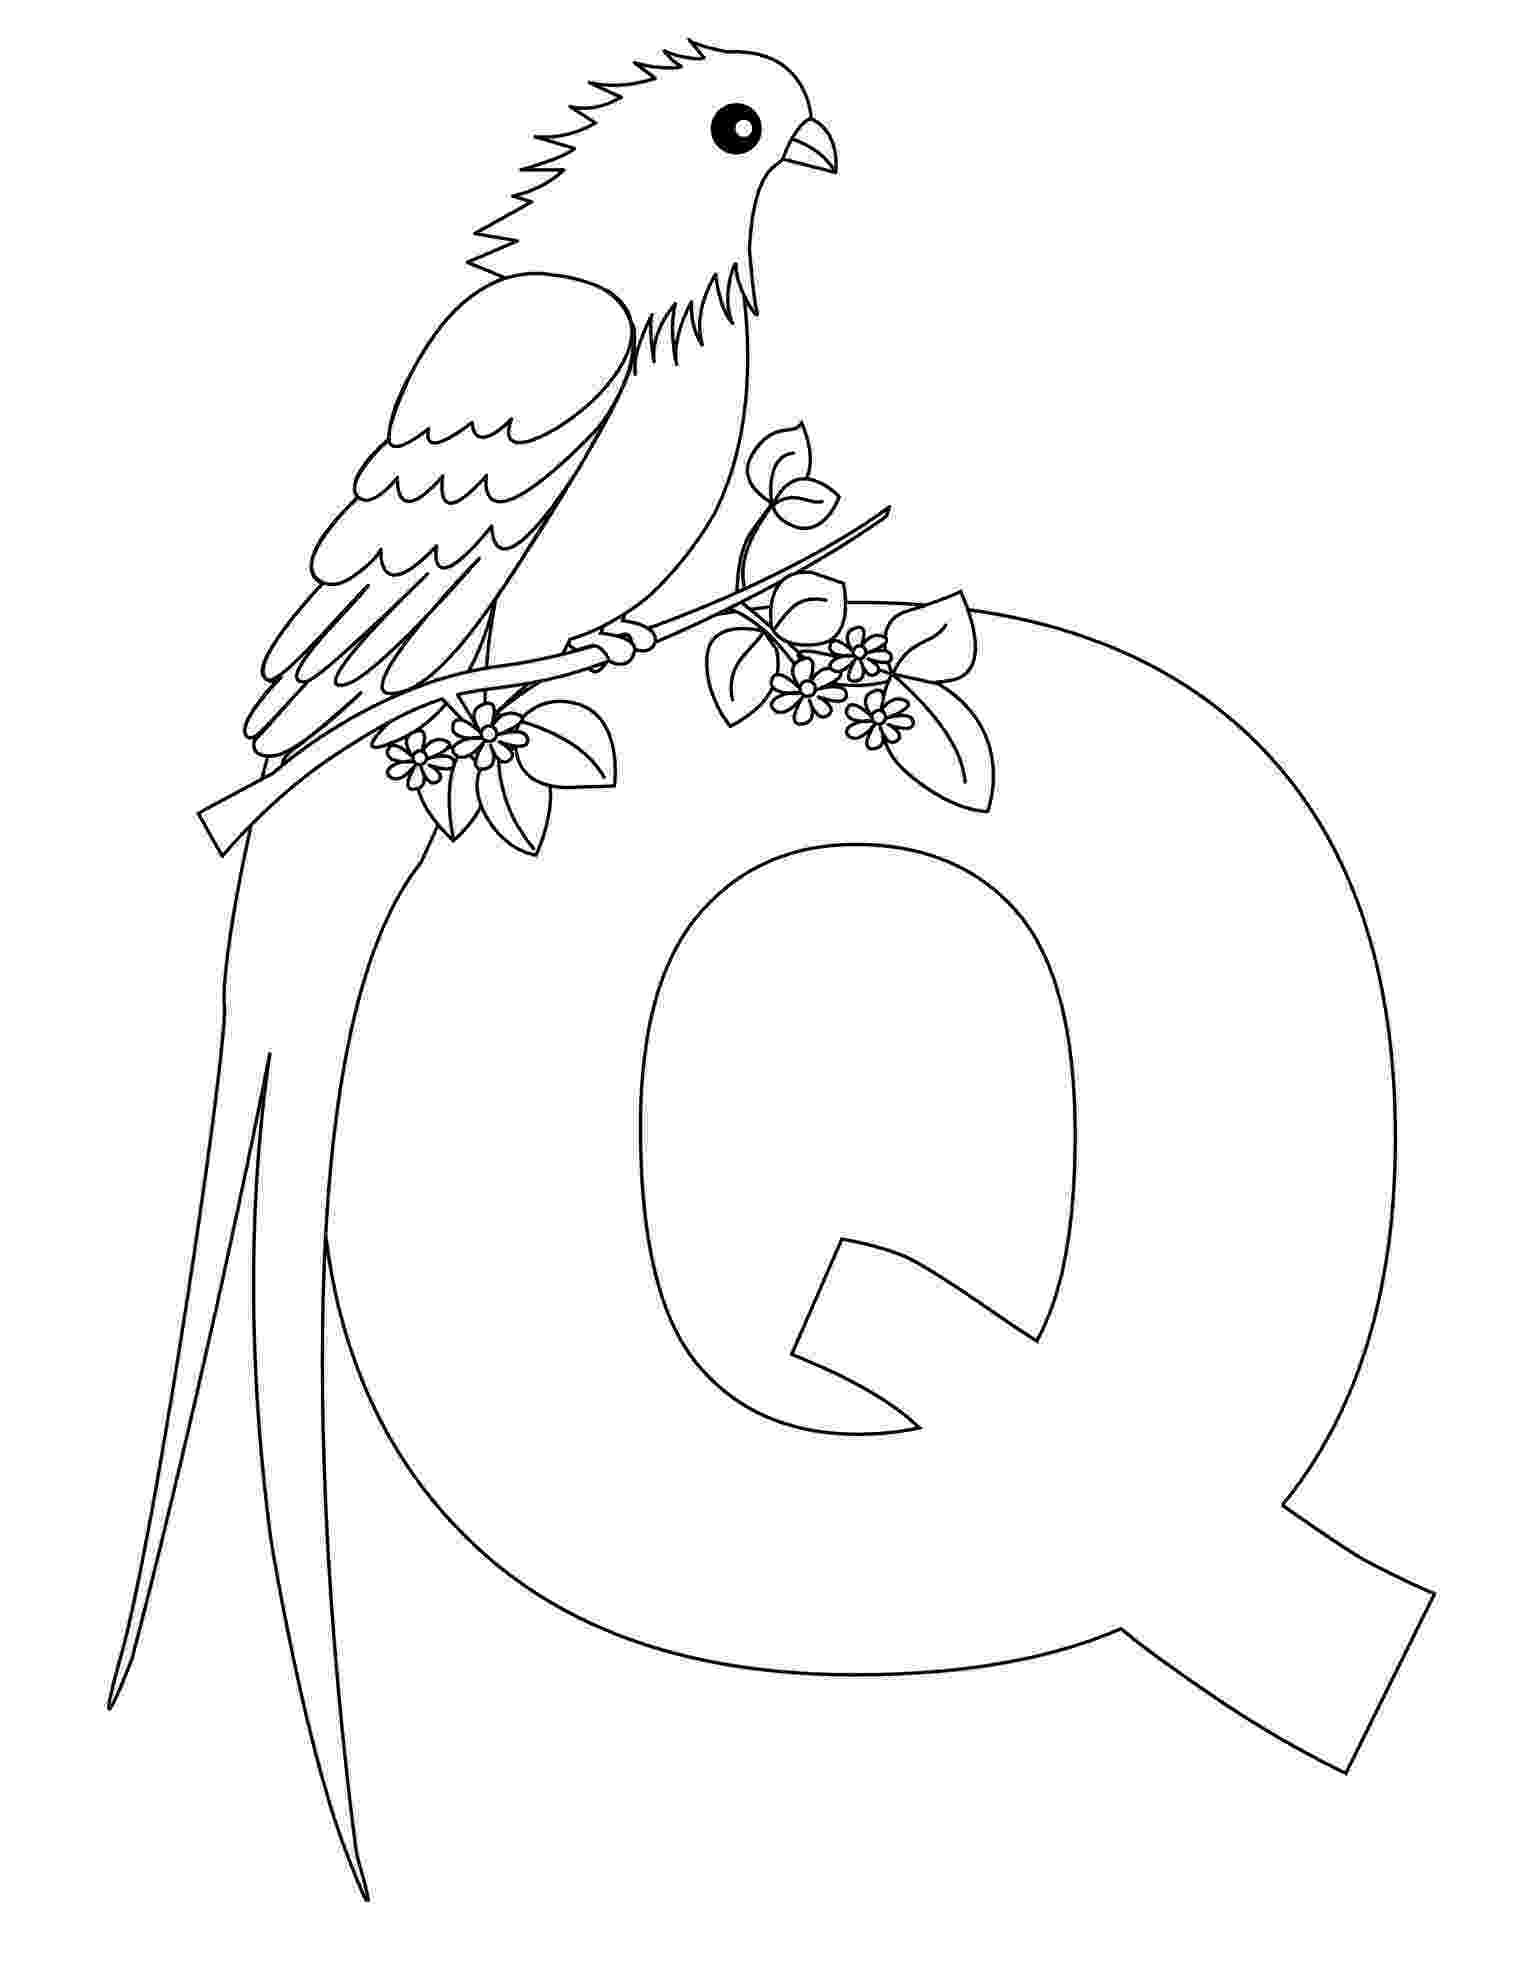 abc coloring sheets a z alphabet coloring pages download and print for free sheets abc coloring